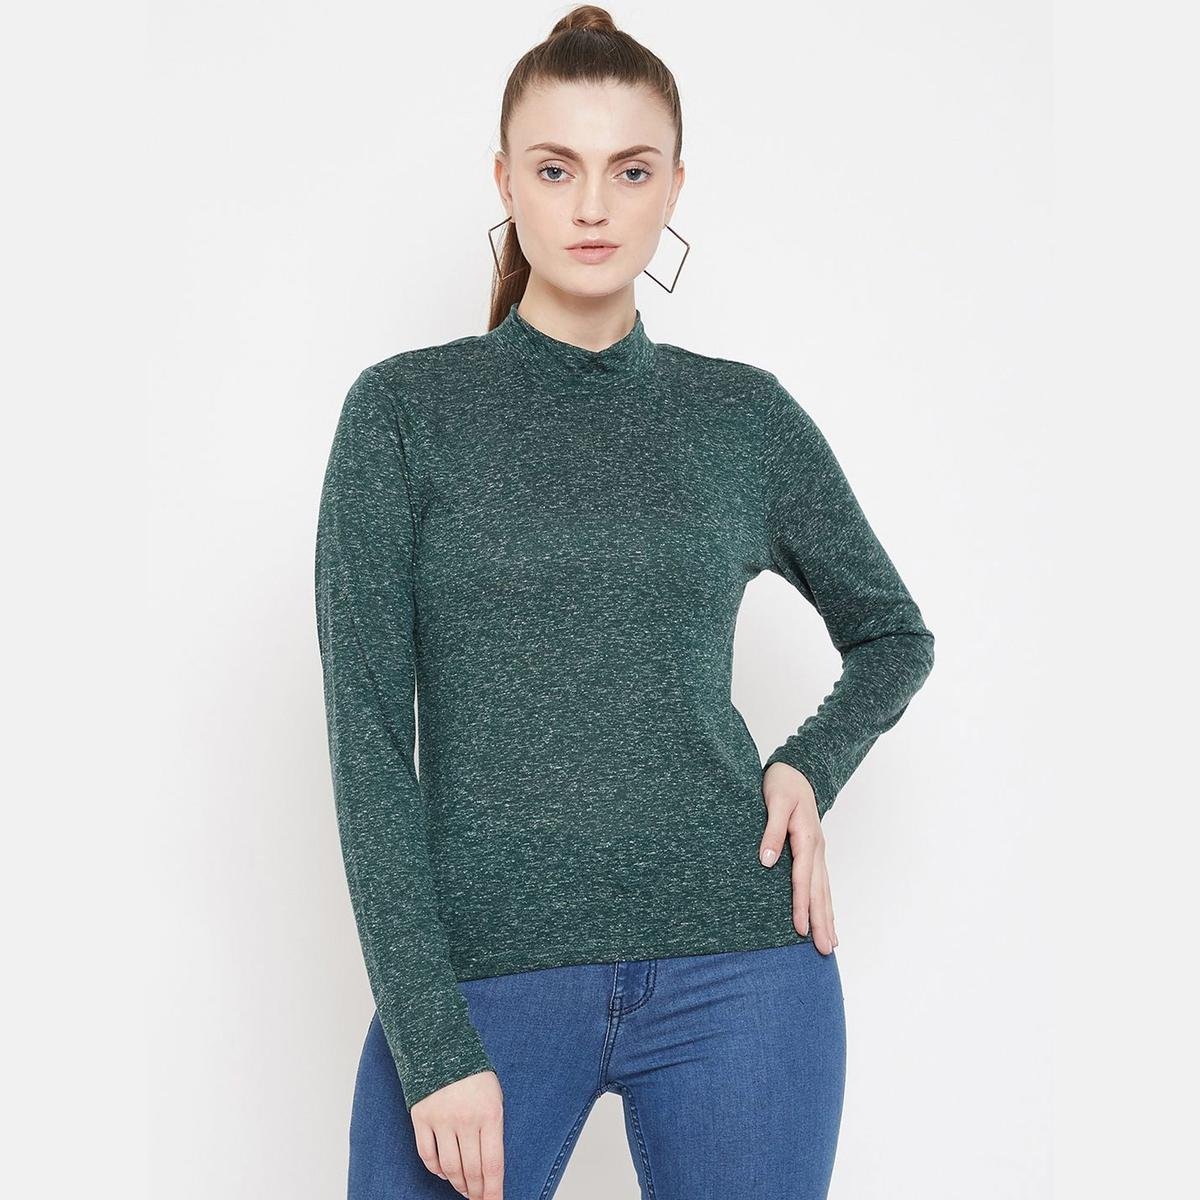 Weave & Knits - Green Colored Casual Wear Solid Cotton Top